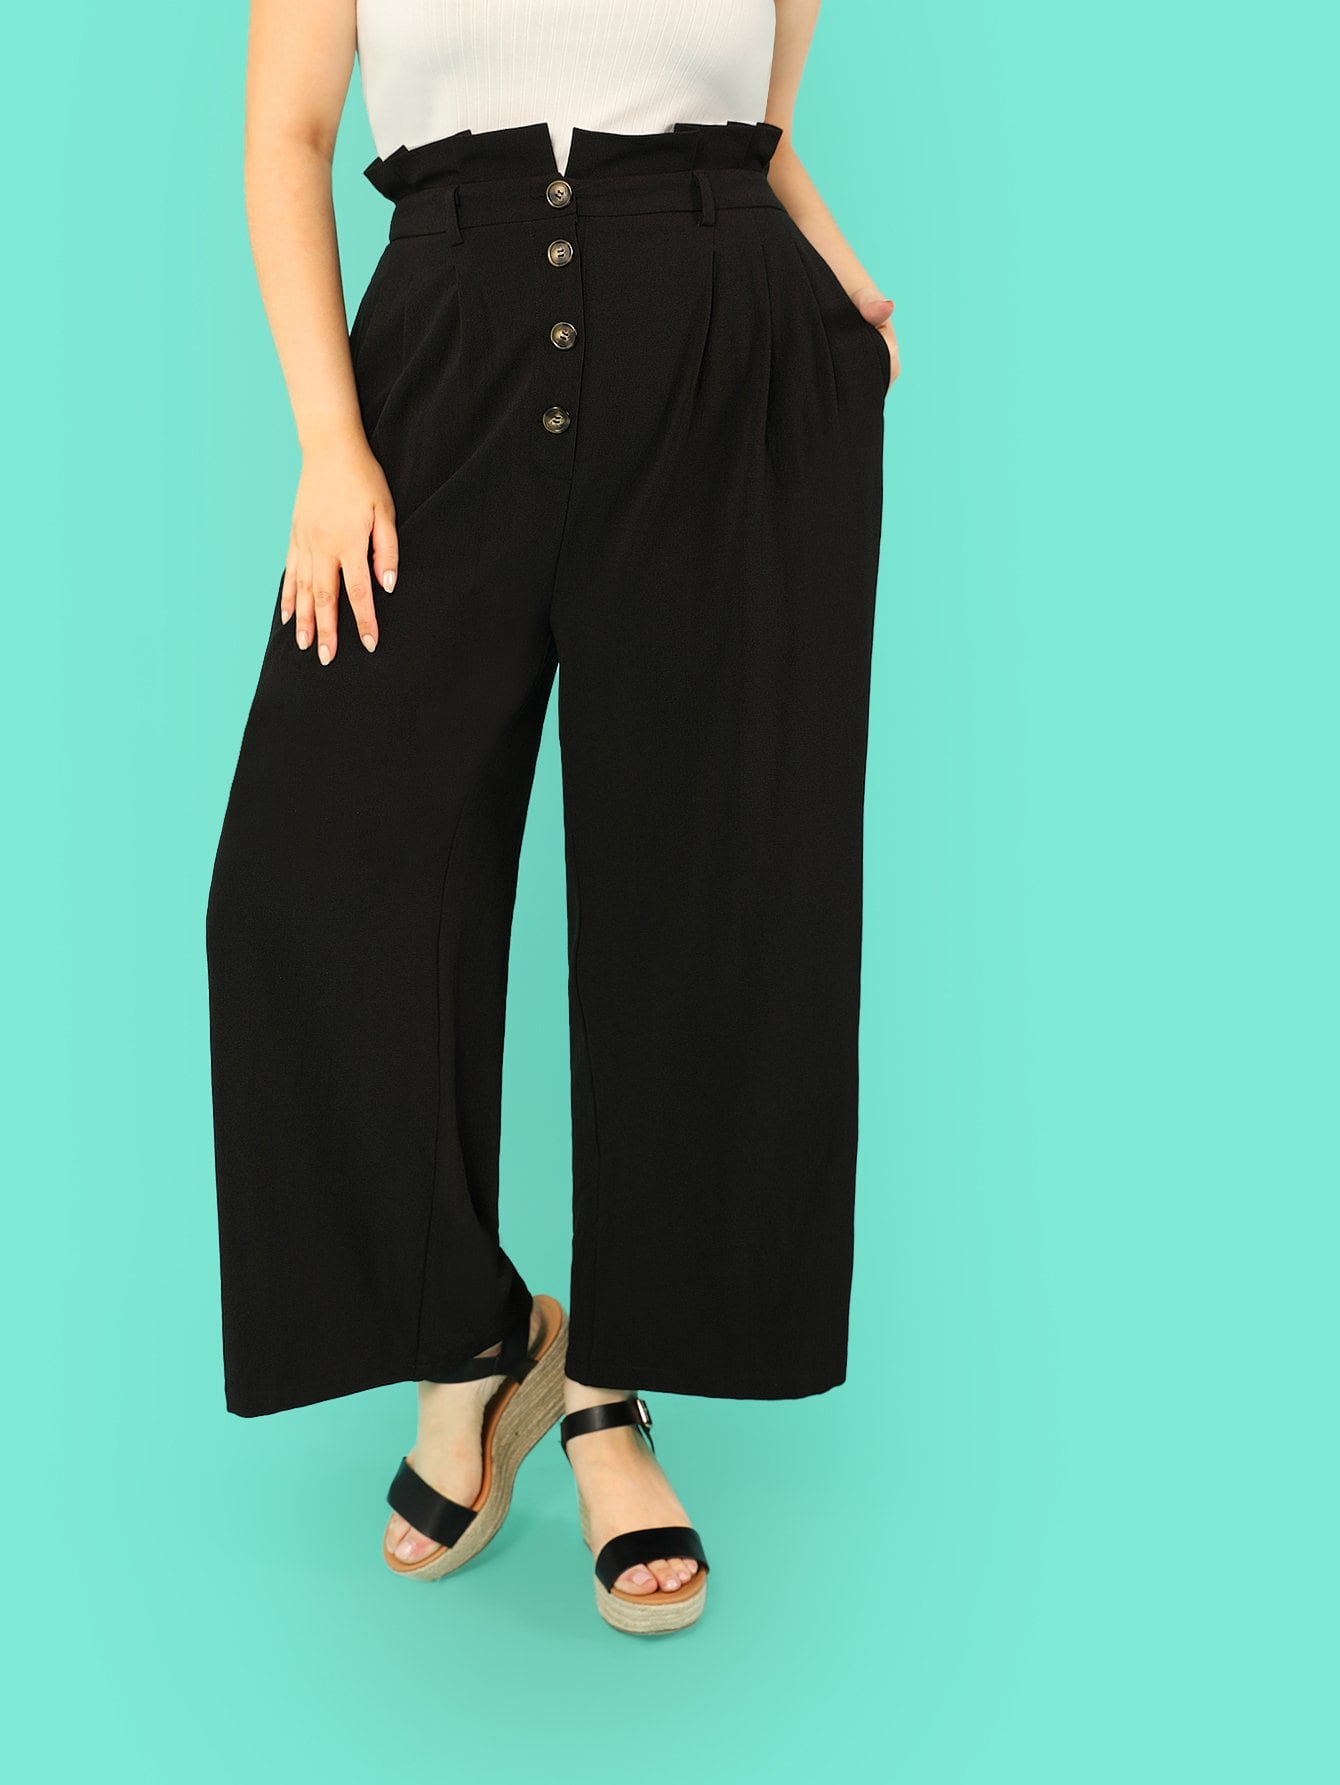 Plus Frilled Waist Button Up Pants low waist button design pencil pants